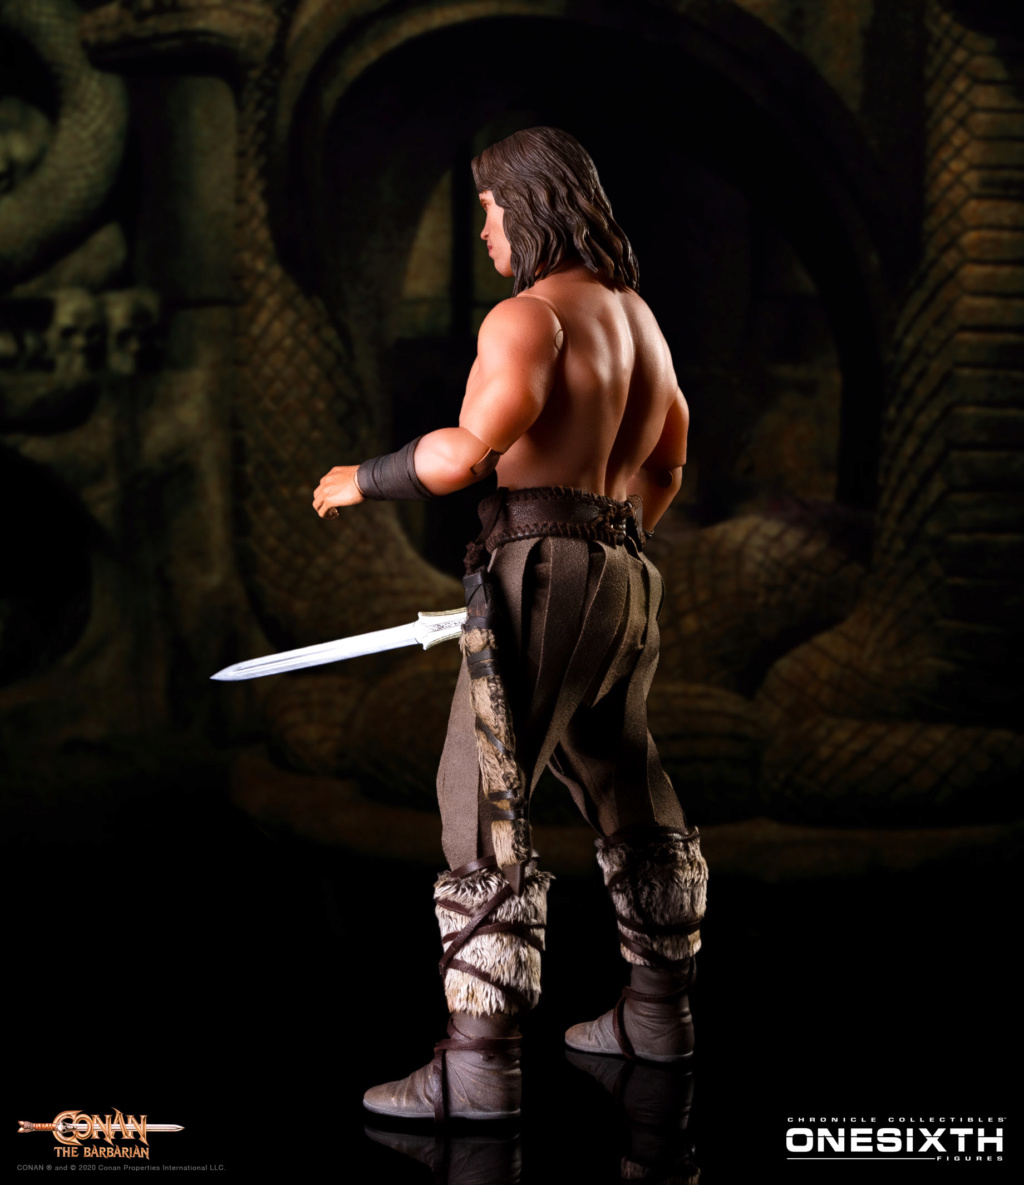 NEW PRODUCT: Chronicle Collectibles: OneSixth Conan the Barbarian Figure Chroni13